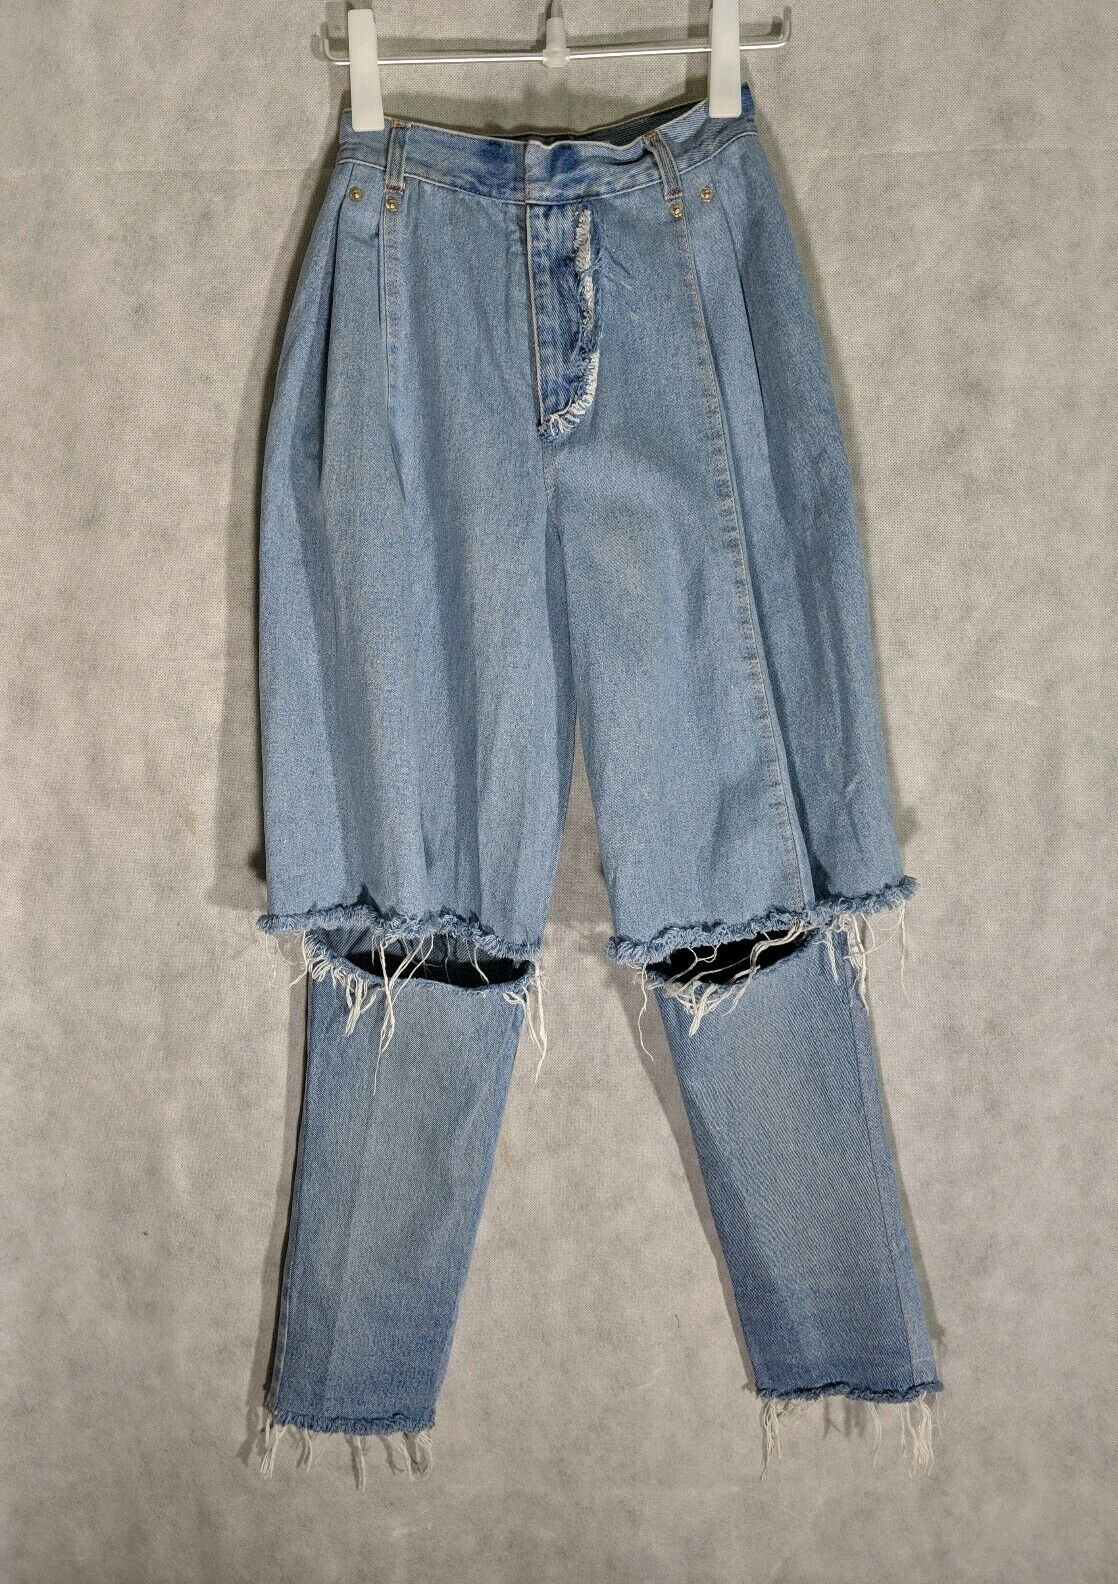 Ksenia Schnaider Demi Slim Jeans Sold Out XS  Light bluee